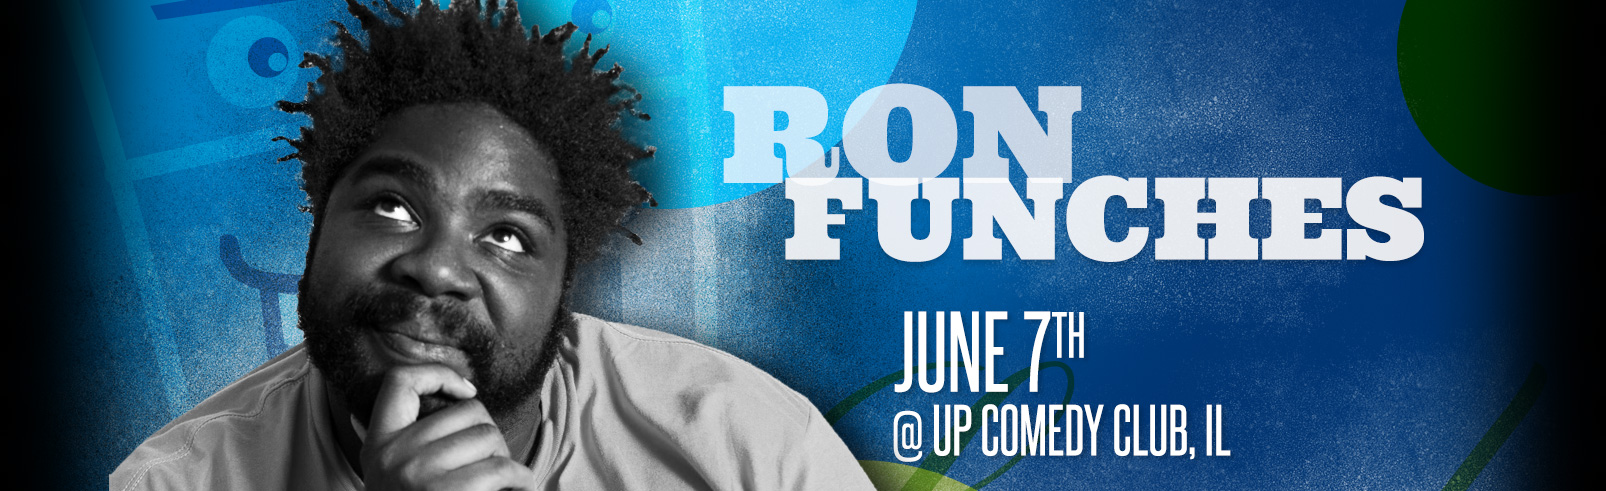 Ron Funches @ UP Comedy Club